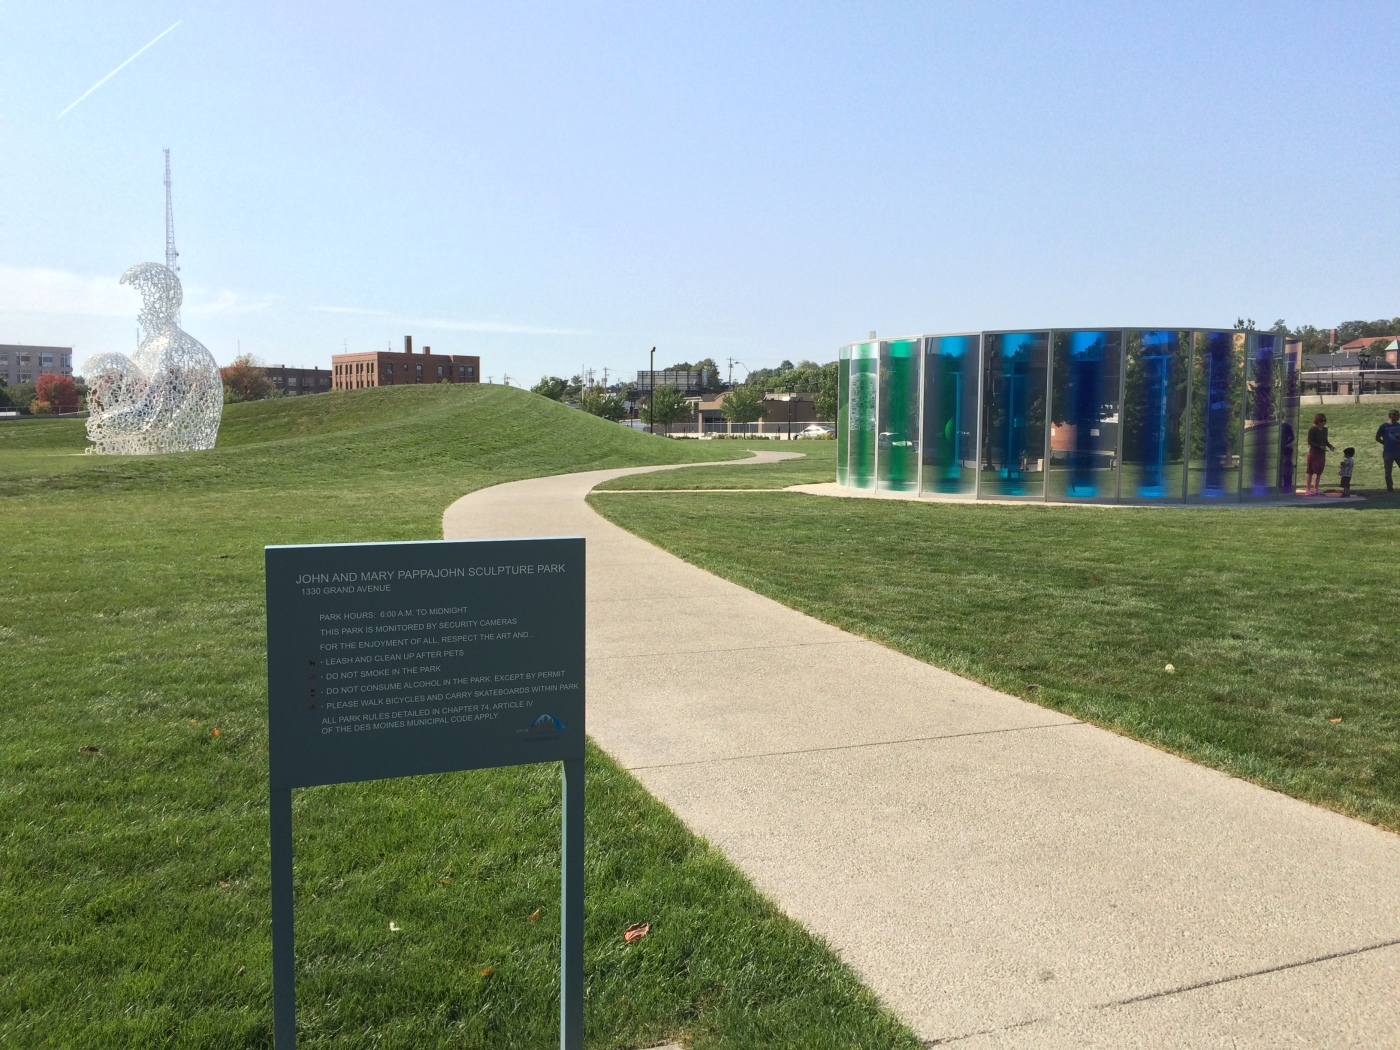 Pappajohn sculpture park des moines ia get out and travel for Craft stores des moines